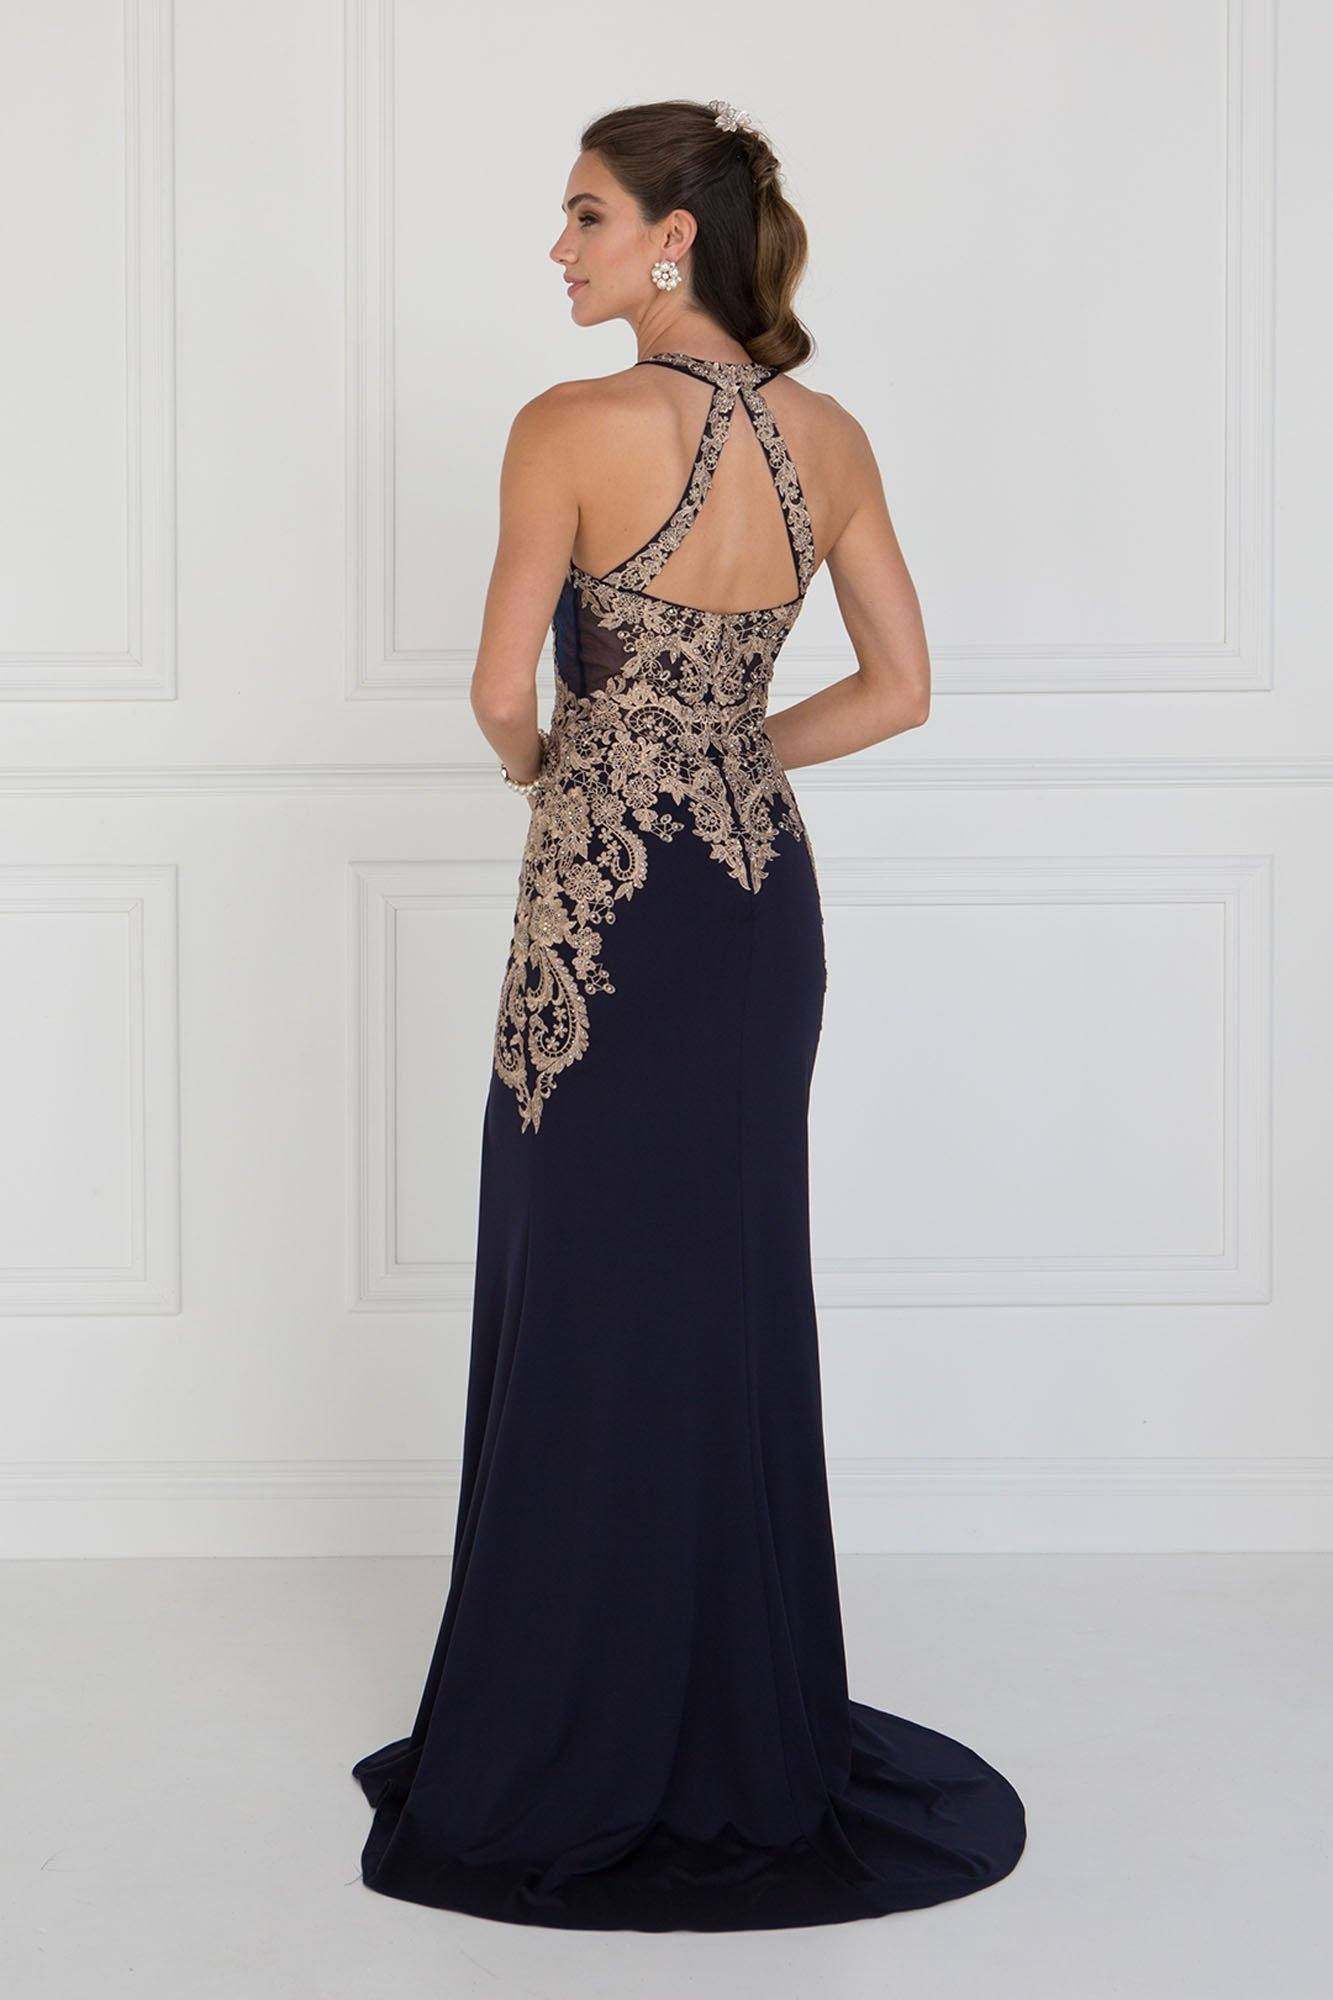 459beeee752 ... Seductive Navy evening gown with slit GLS 1519N-Simply Fab Dress ...